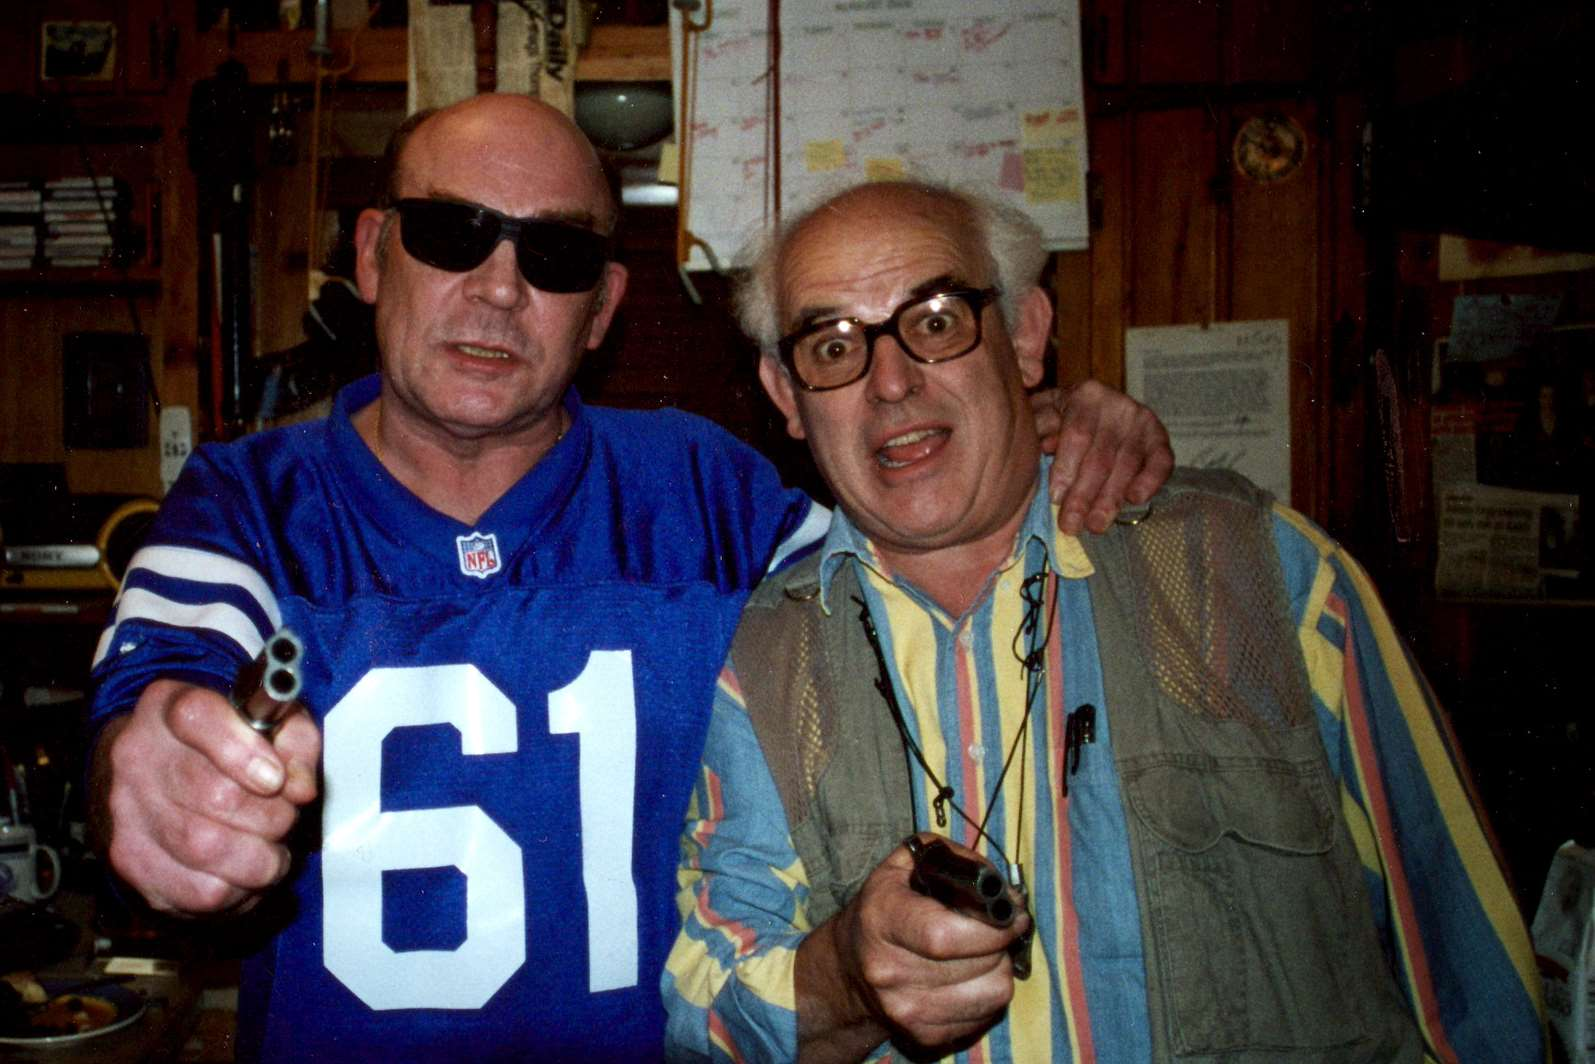 Illustrator Ralph Steadman, right, with Hunter S Thompson, author of Fear and Loathing in Las Vegas